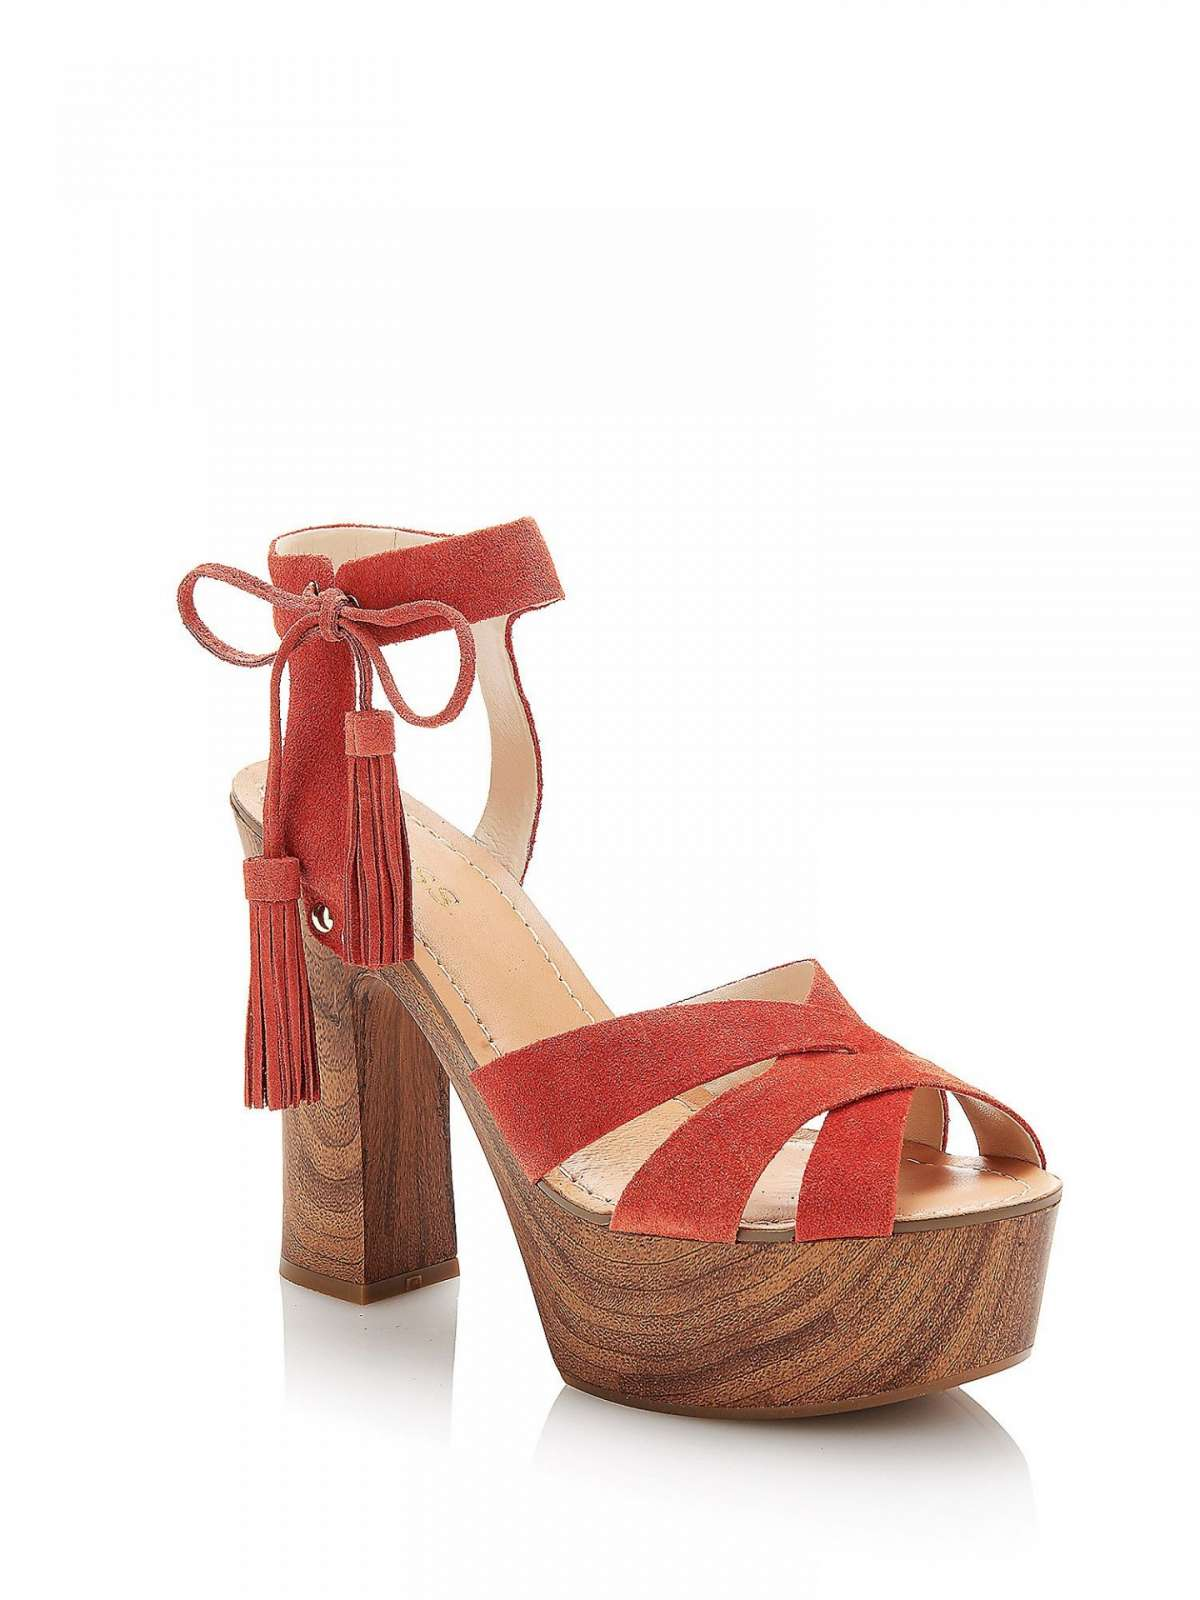 Sandali block heels in camoscio ruggine